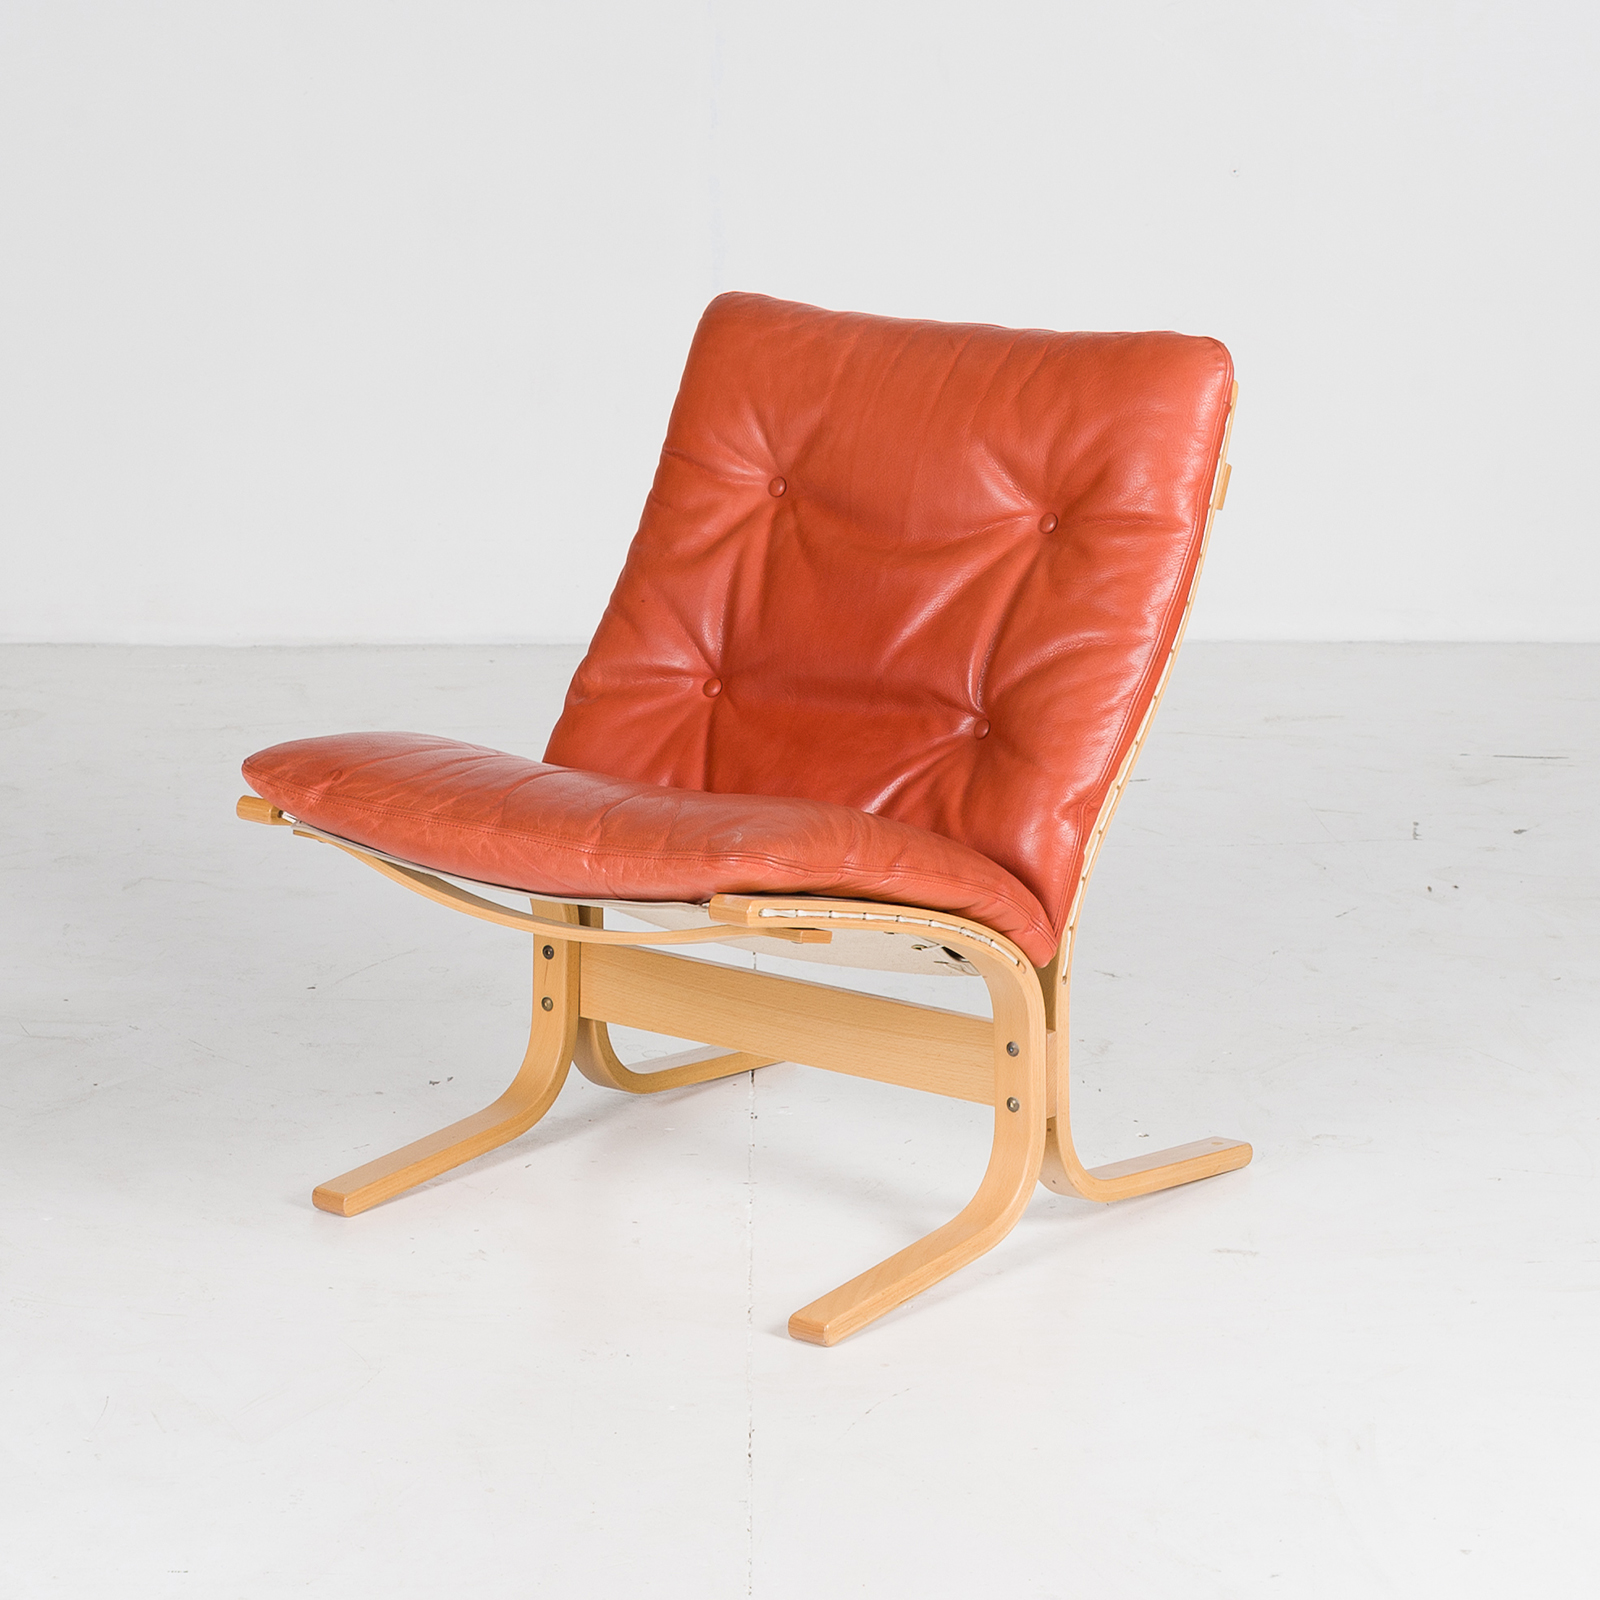 Low Back Siesta Armchair By Ingmar Relling In Tangerine Leather, 1960s, Netherlands67